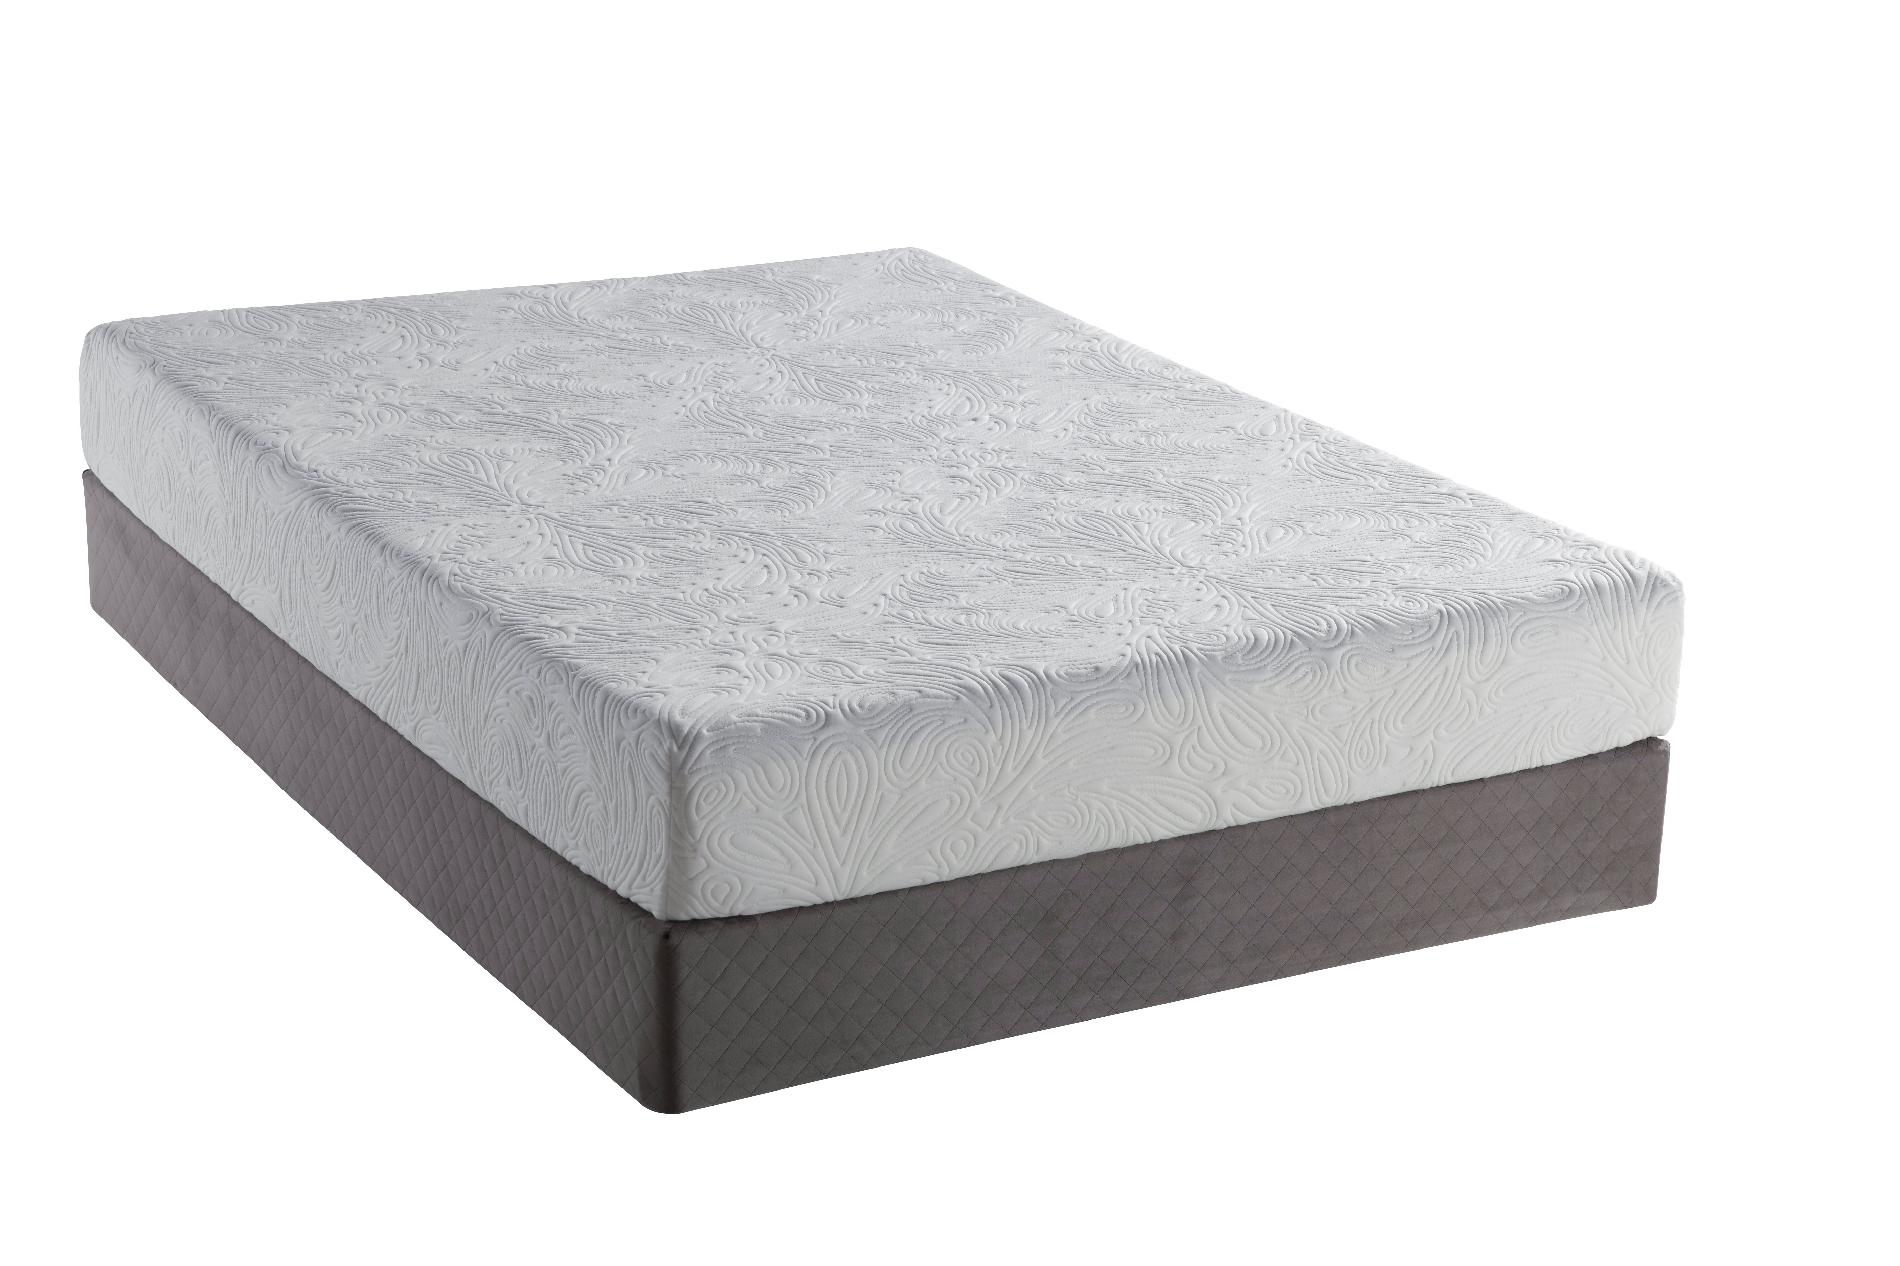 Sealy Posturepedic Optimum Destiny, Firm, Queen Mattress Only